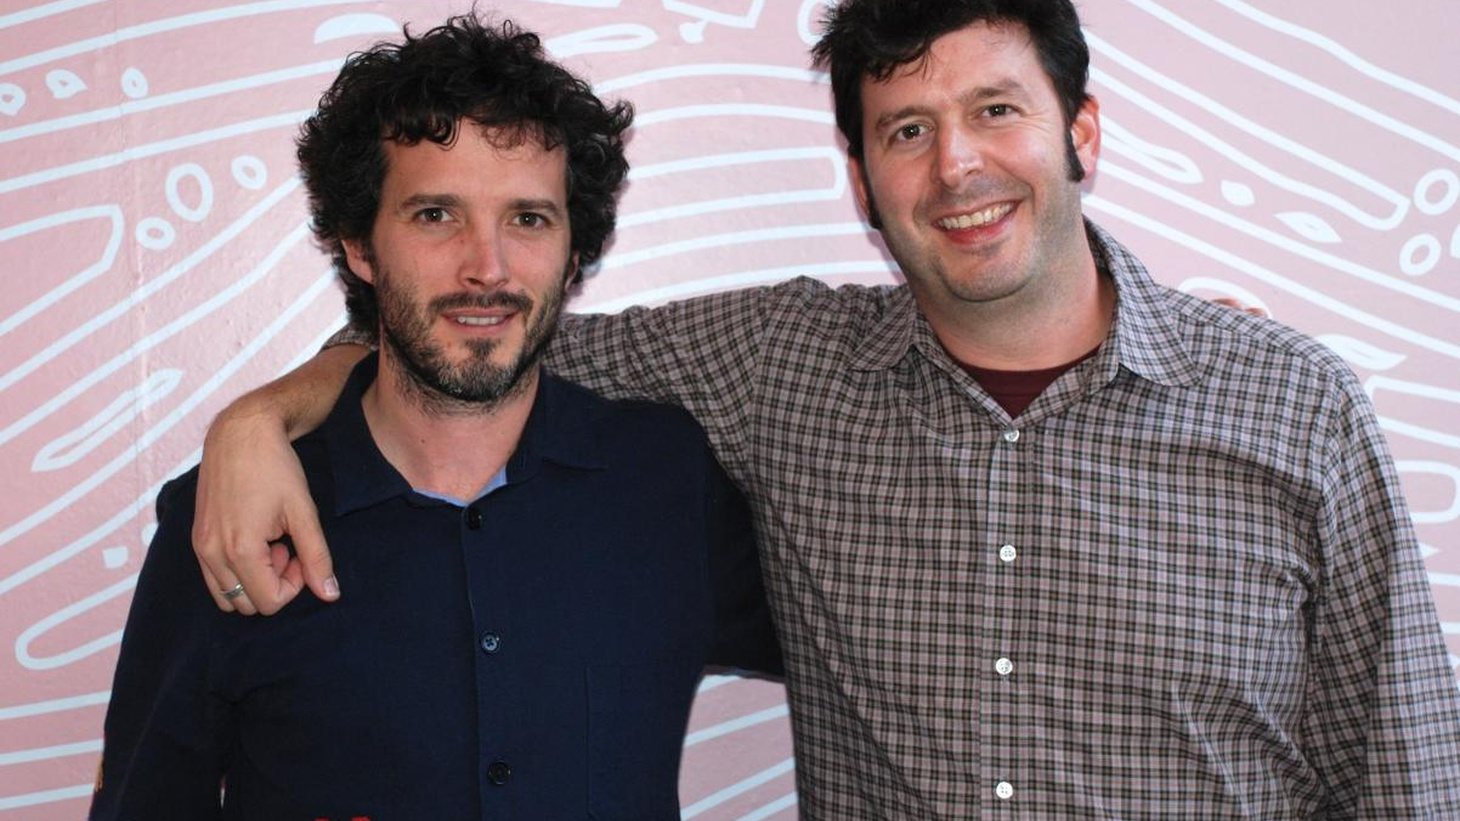 Bret McKenzie may be known as half of the musical comedy duo Flight of the Conchords, but he's getting attention for his work as music supervisor on the new Muppets movie.